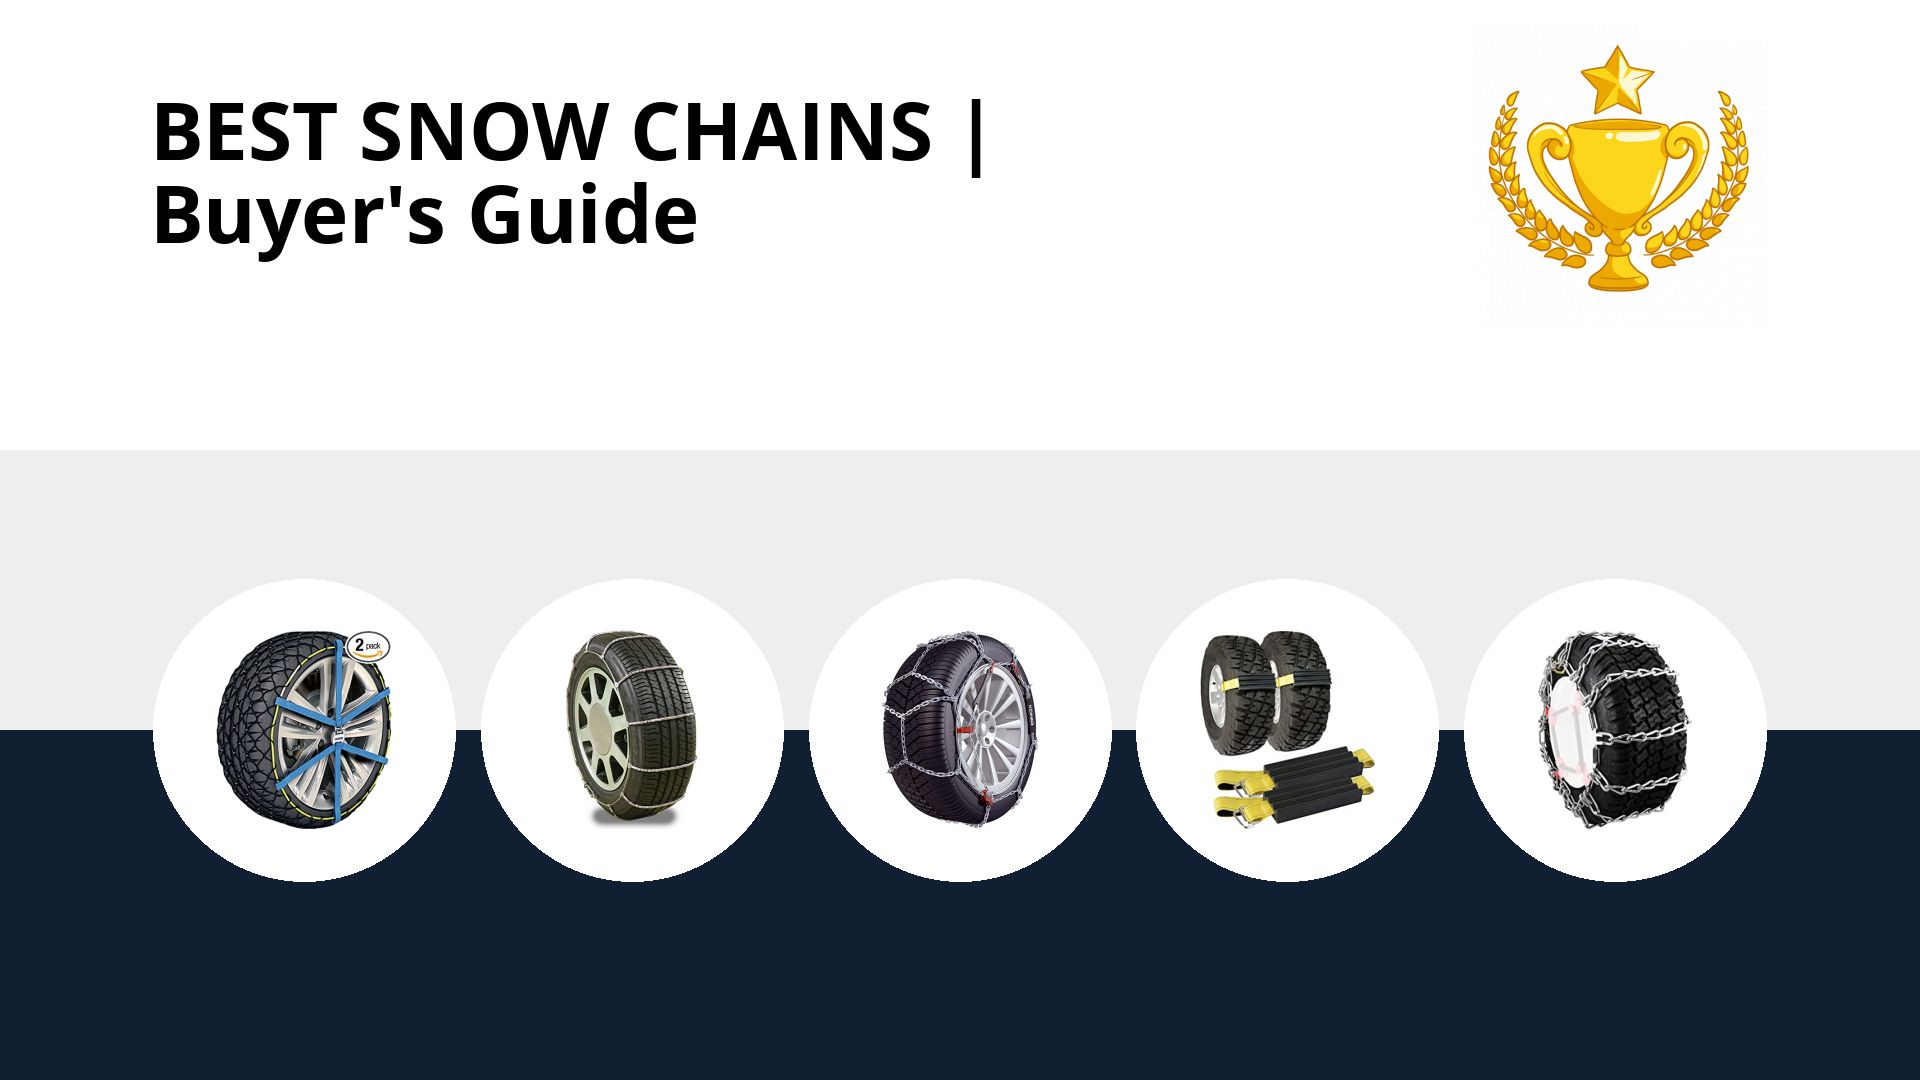 Best Snow Chains: image